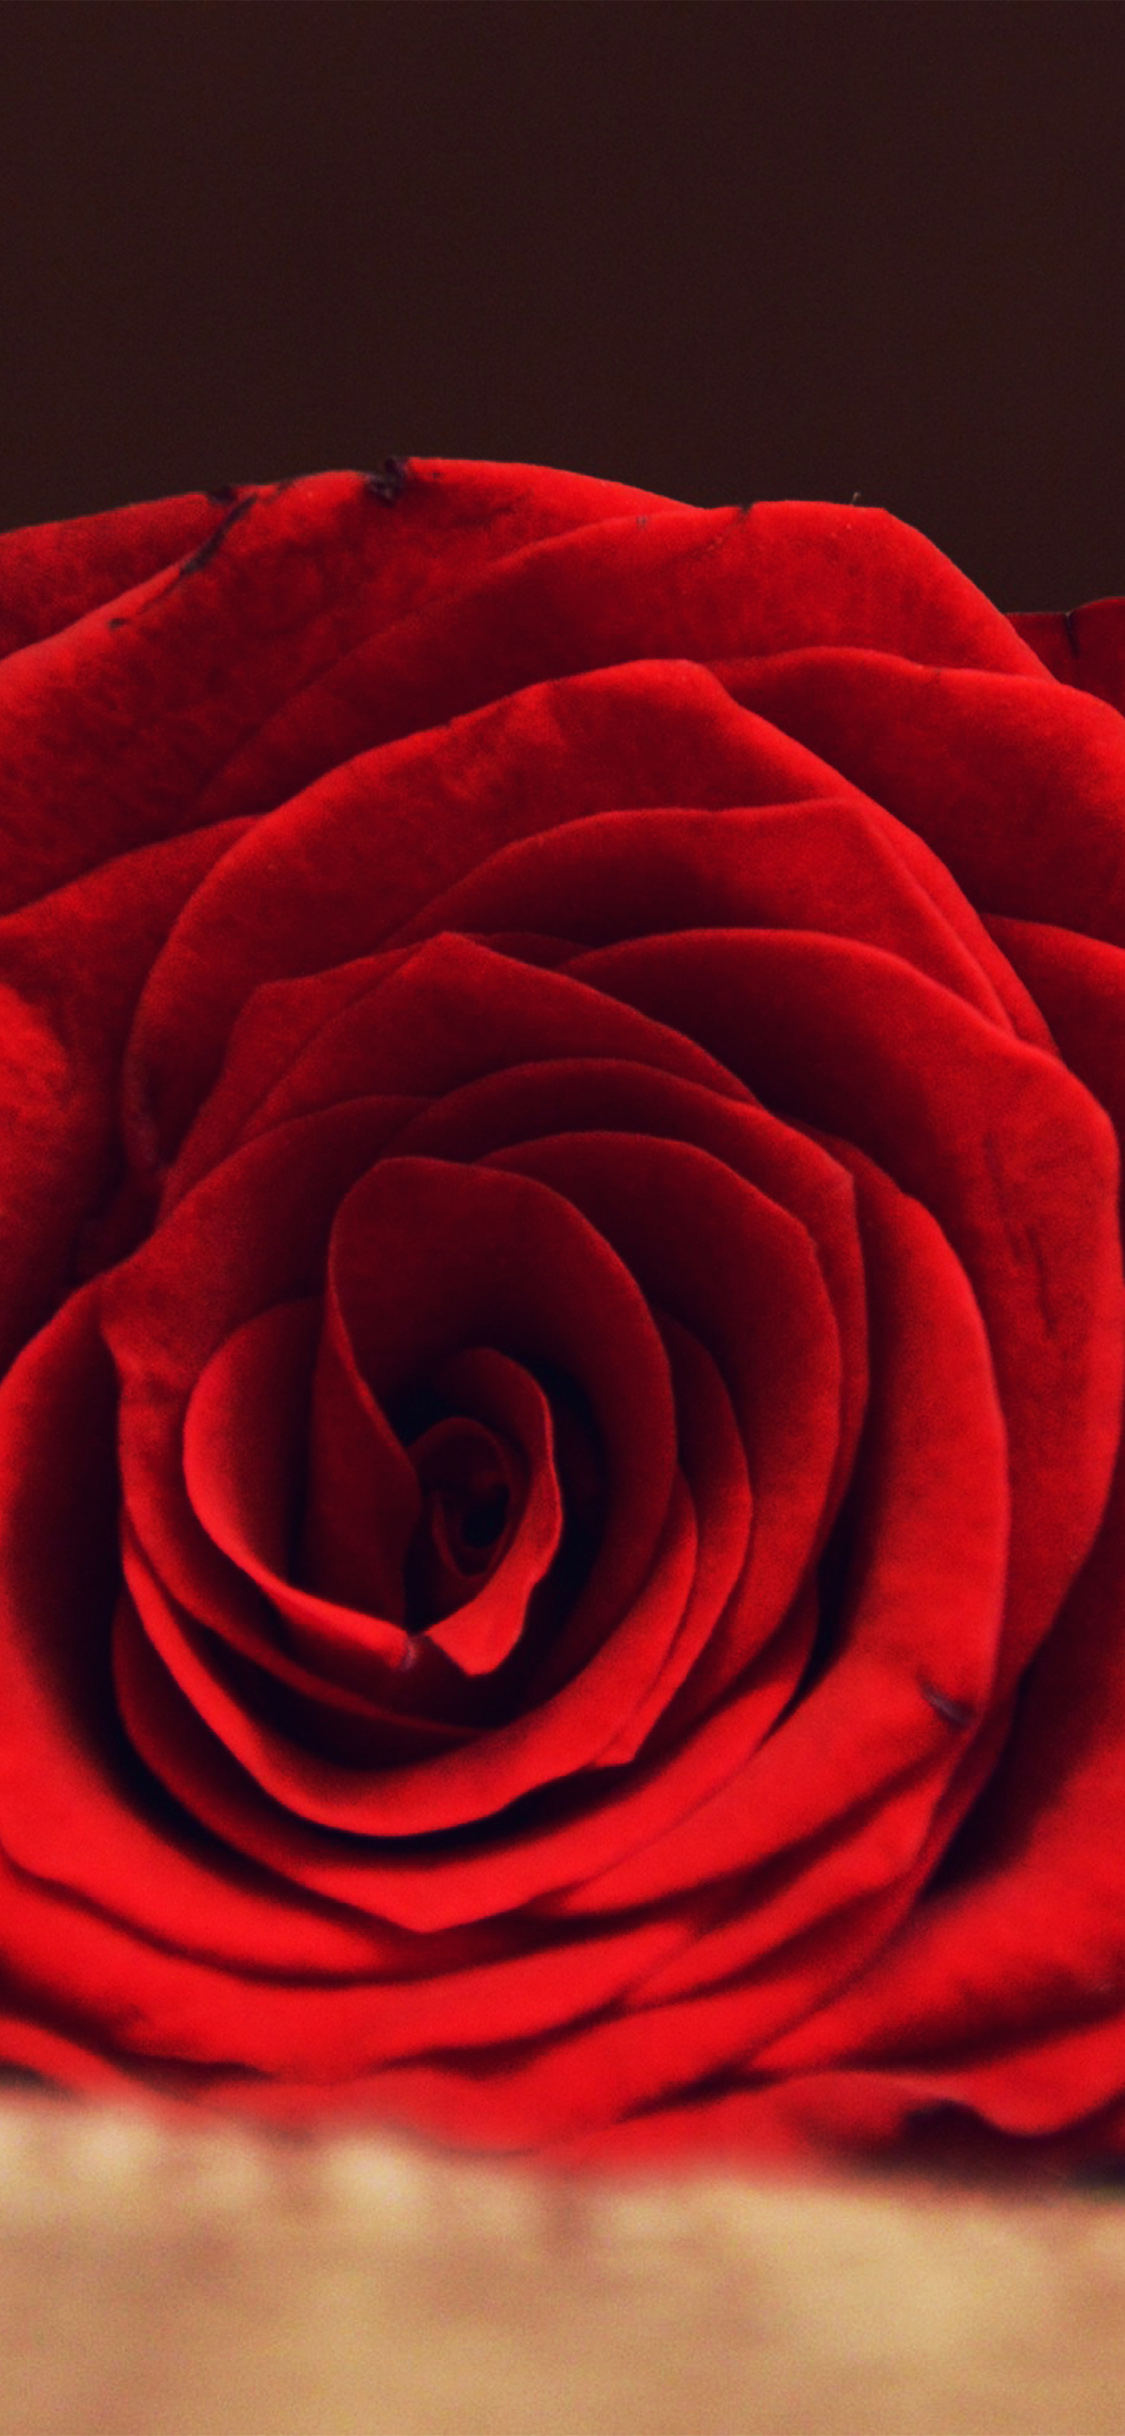 iPhonexpapers.com-Apple-iPhone-wallpaper-nk04-rose-flower-red-spring-love-hot